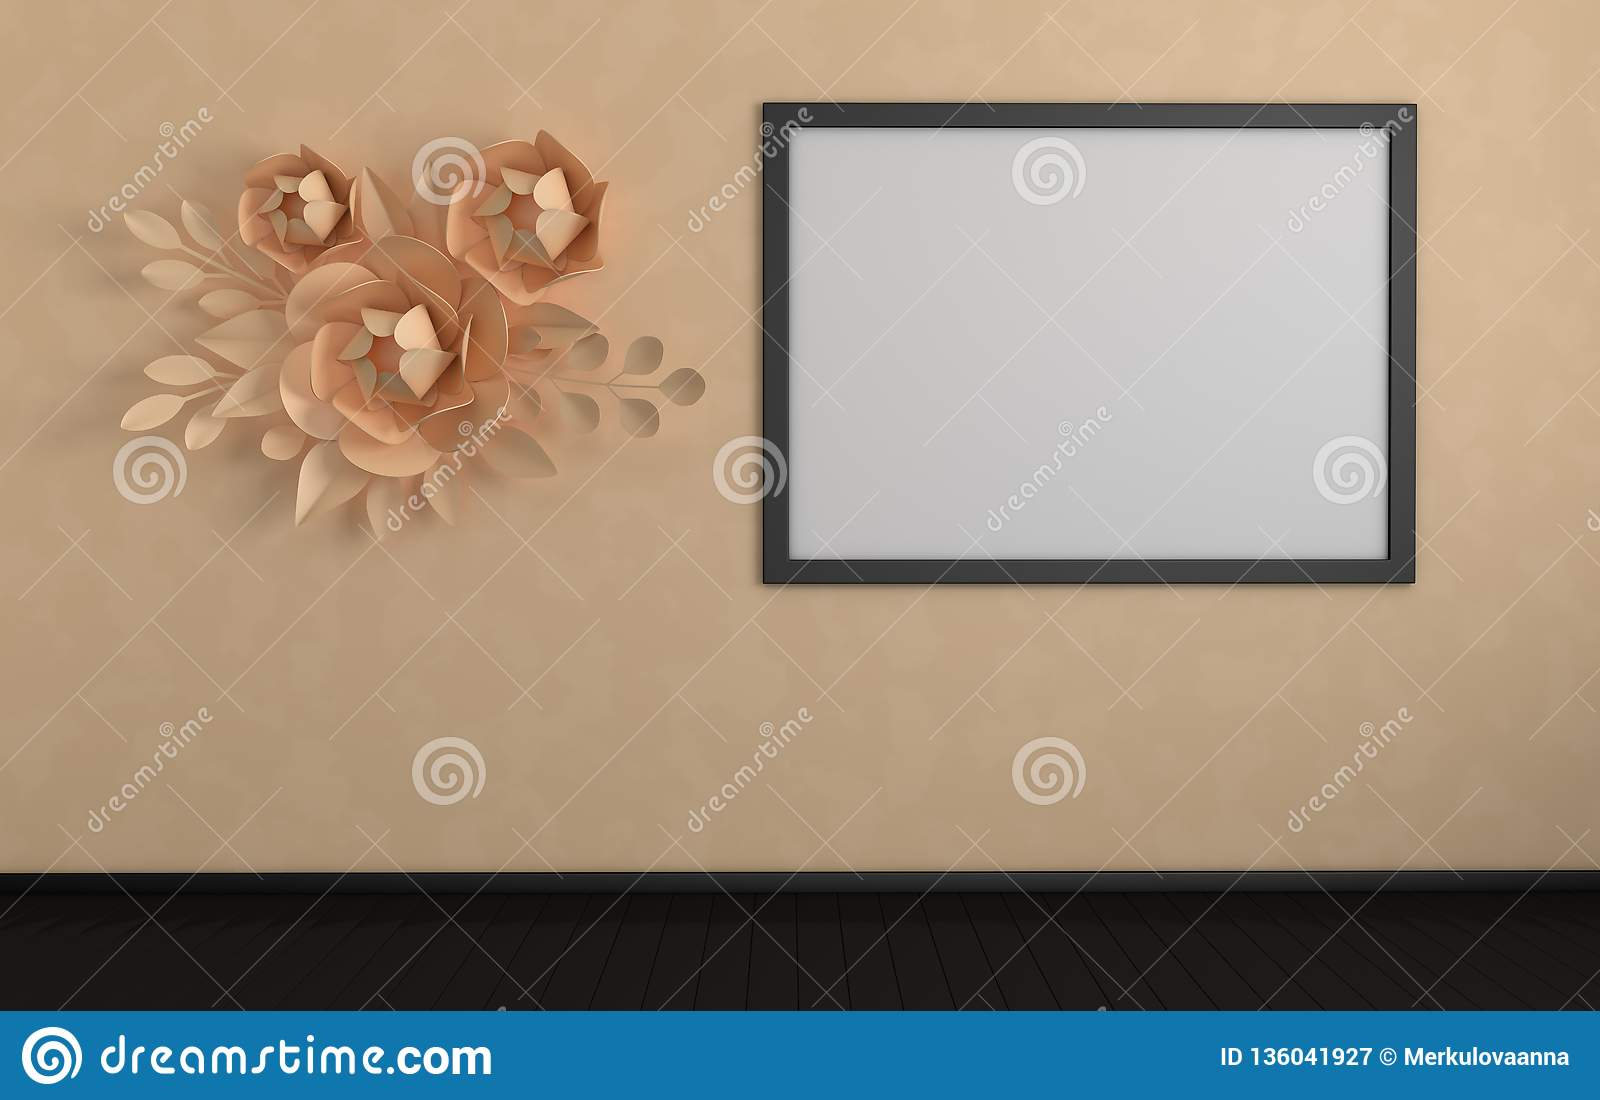 Mock Up Photo Frame In Modern Interior Paper Flowers And Leaves